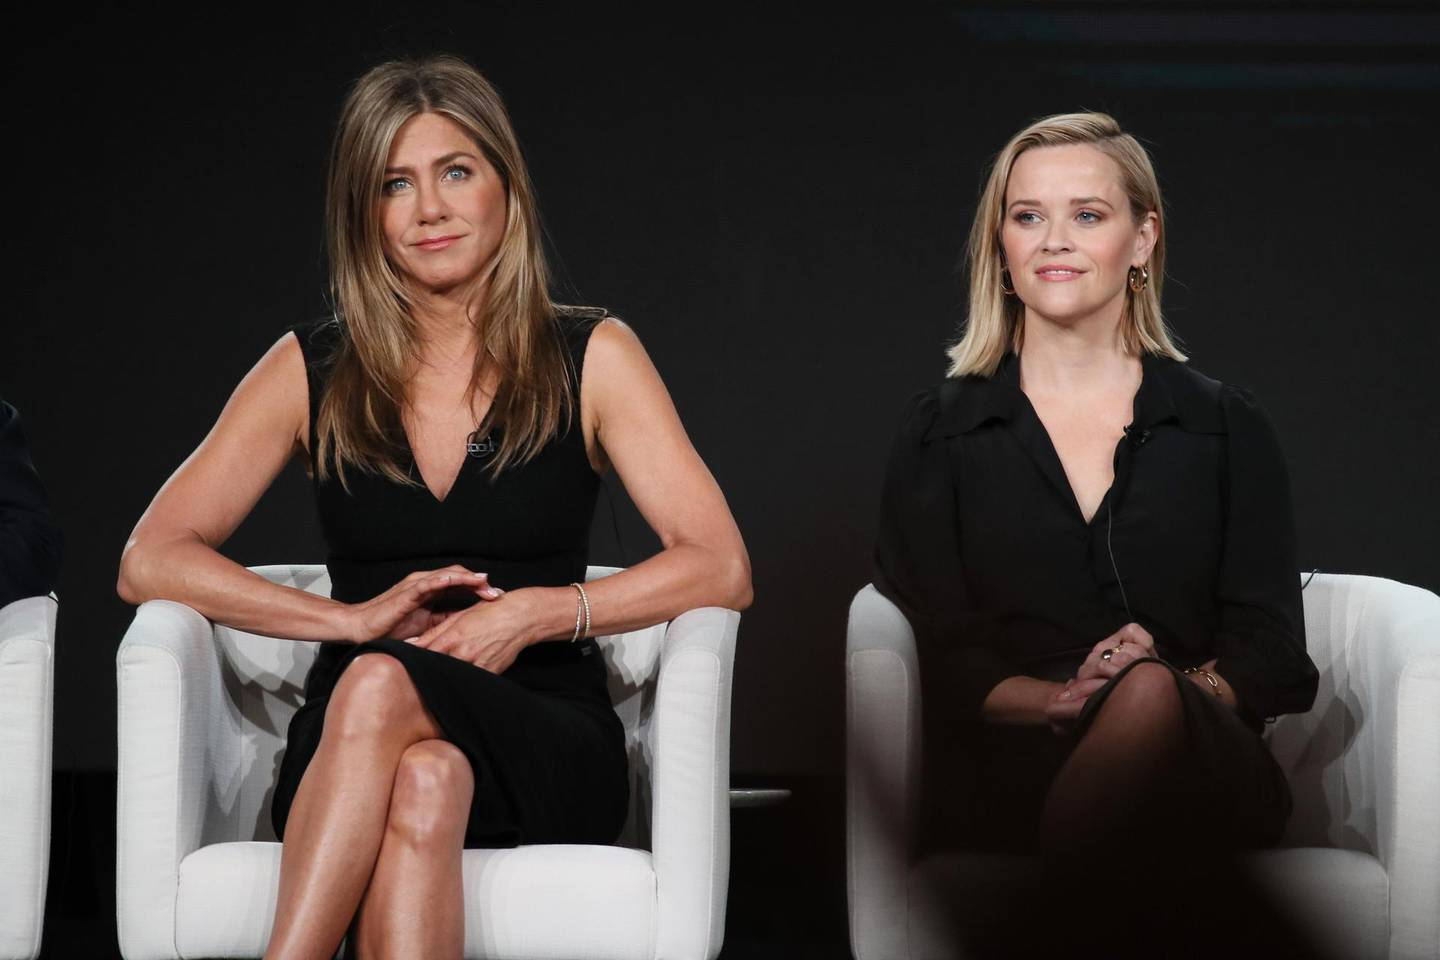 """PASADENA, CALIFORNIA - JANUARY 19: Jennifer Aniston and Reese Witherspoon of """"The Morning Show"""" speaks onstage during the Apple TV+ segment of the 2020 Winter TCA Tour at The Langham Huntington, Pasadena on January 19, 2020 in Pasadena, California.   David Livingston/Getty Images/AFP == FOR NEWSPAPERS, INTERNET, TELCOS & TELEVISION USE ONLY =="""